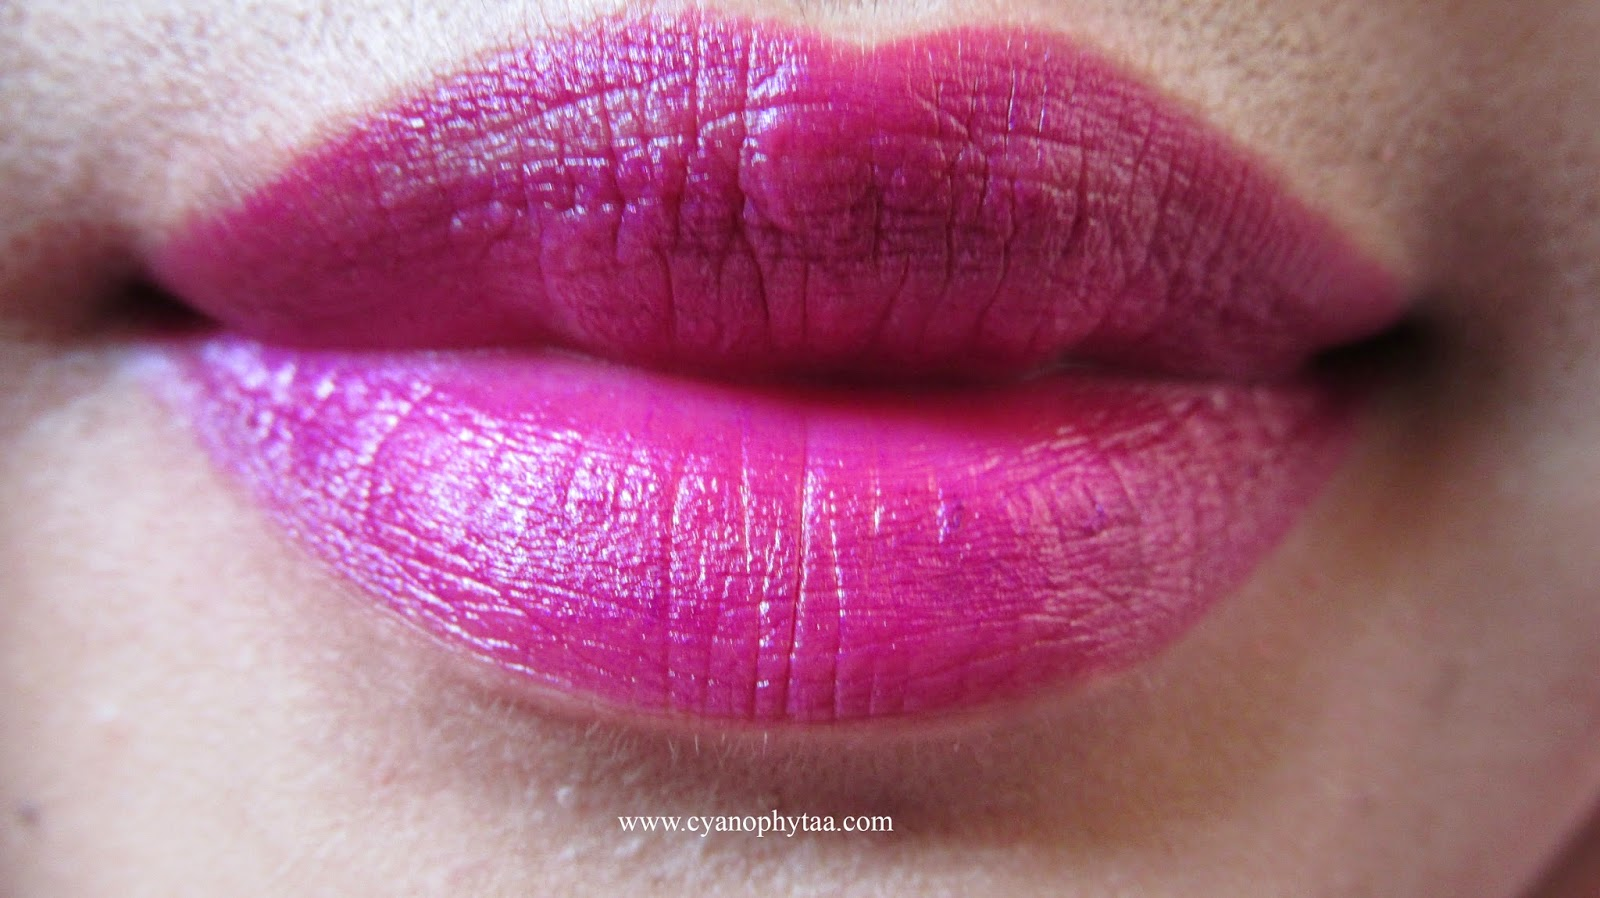 Review: NYX Matte Lipstick Aria - Cyanophyta's Beauty Diary